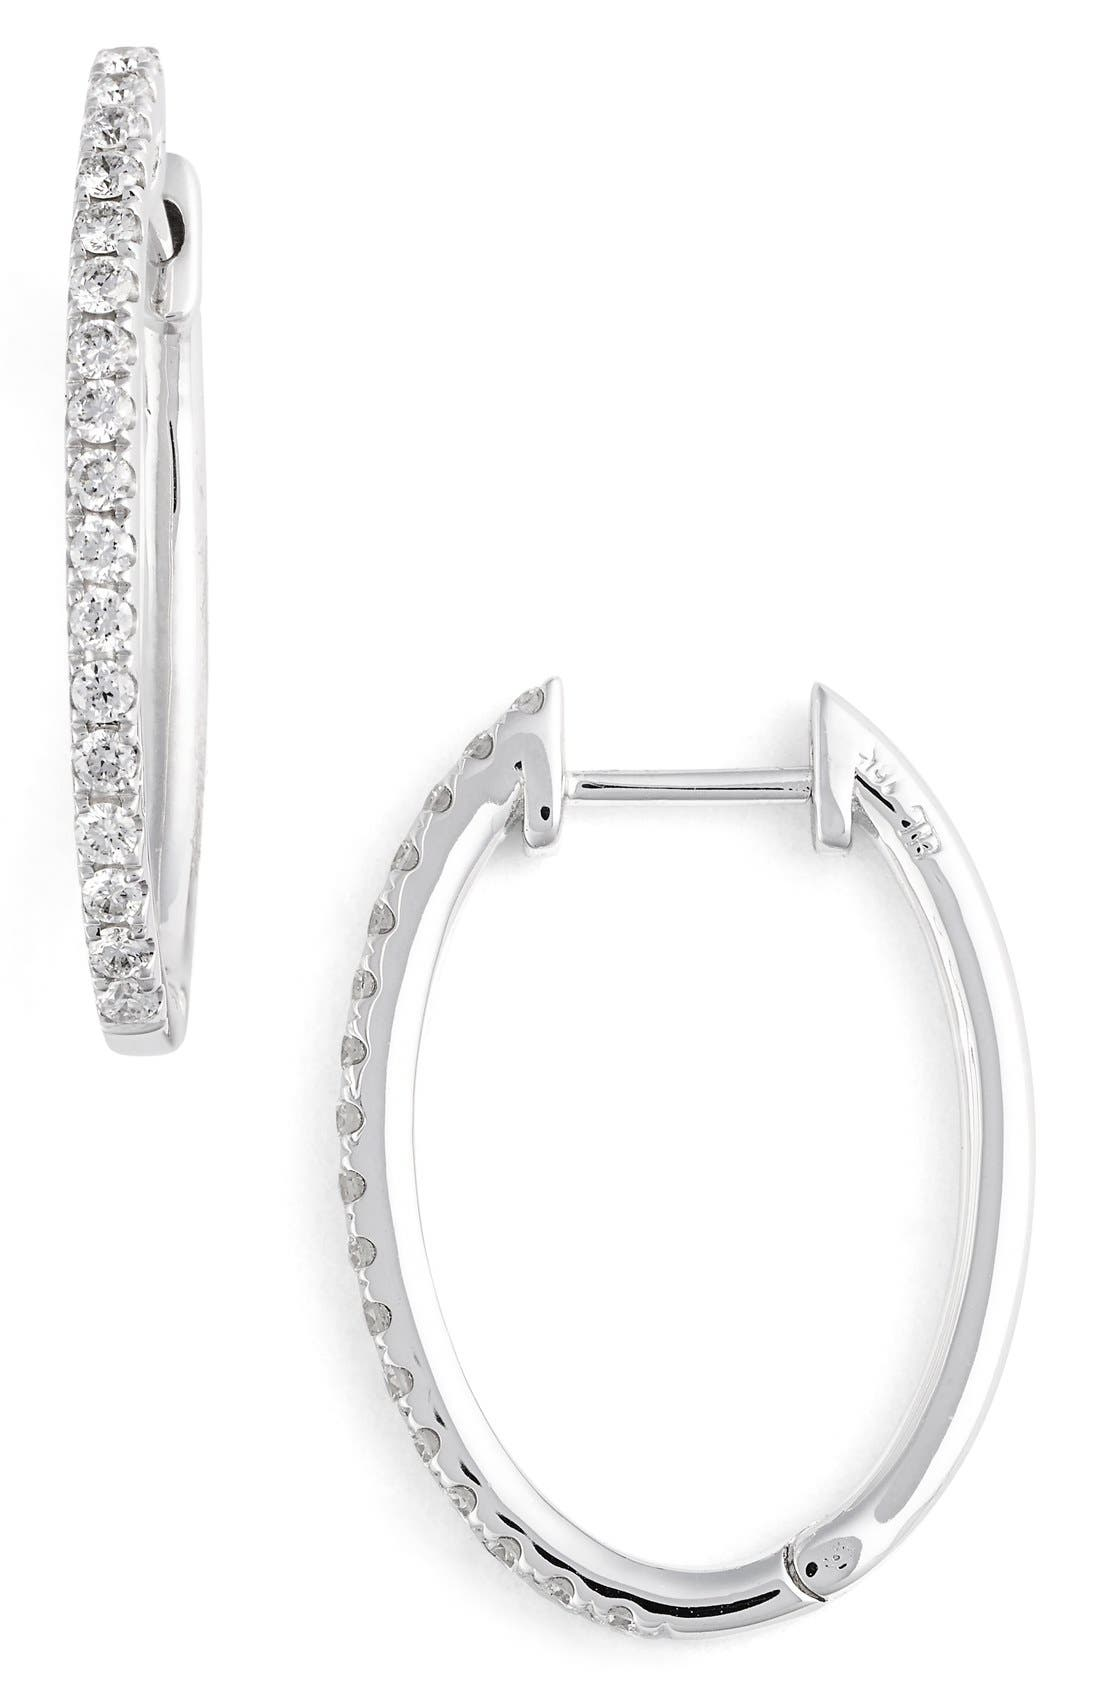 Oval Hoop Diamond Earrings,                         Main,                         color, 711